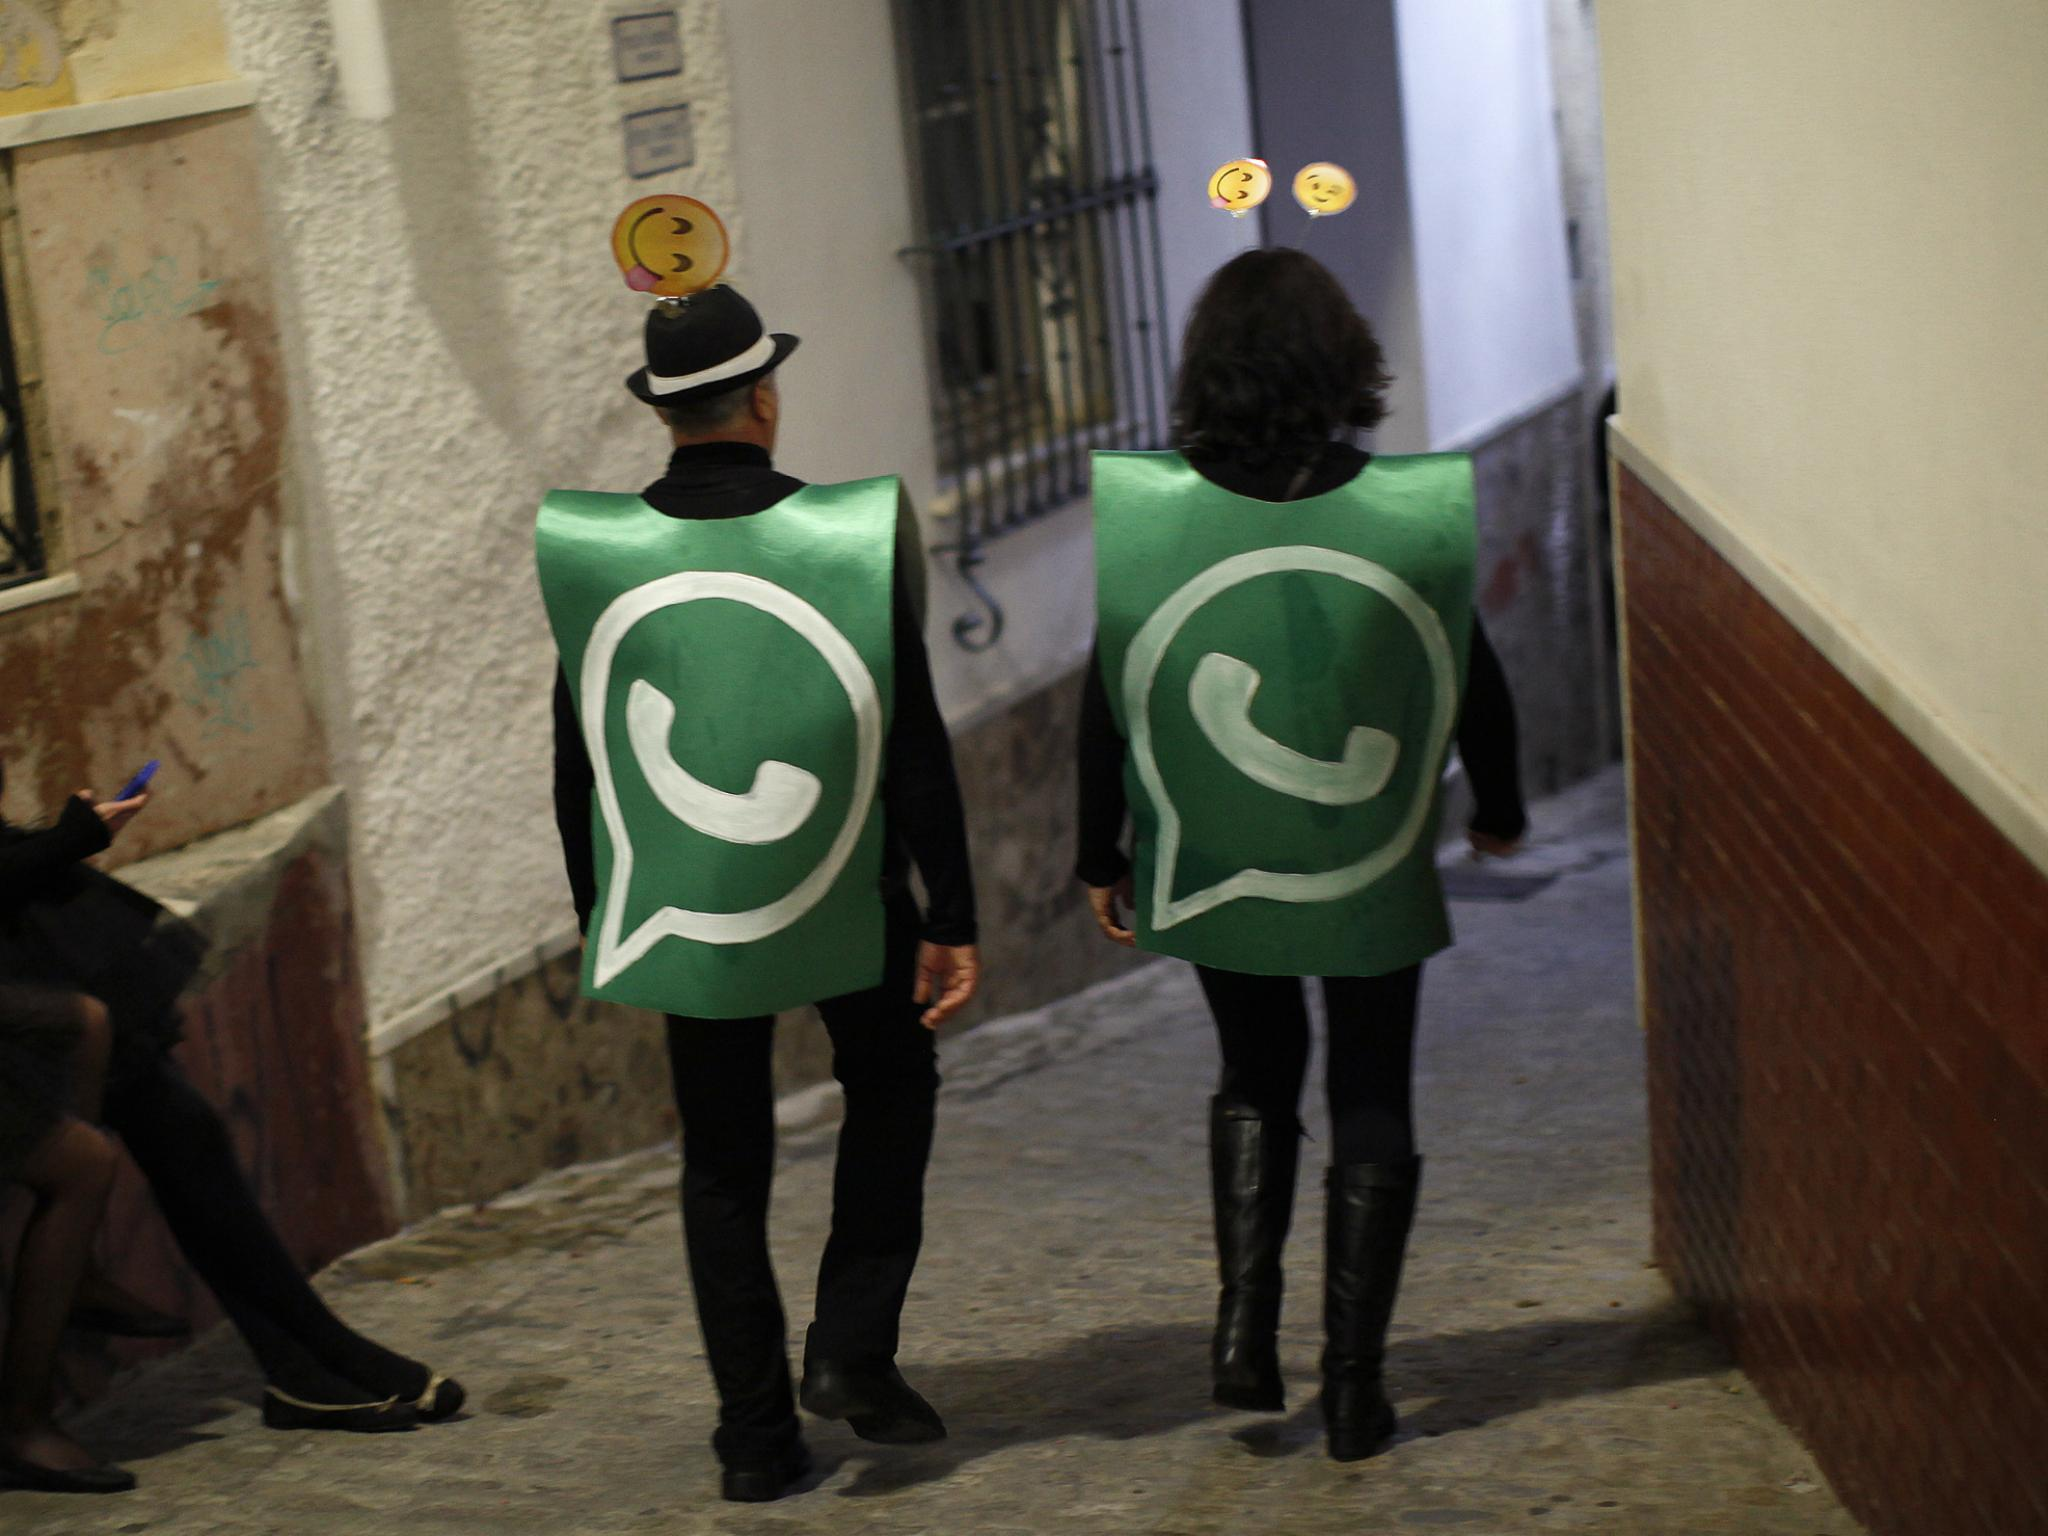 WhatsApp Bug: Major Issue with App Allows Blocked Contacts to Send Messages